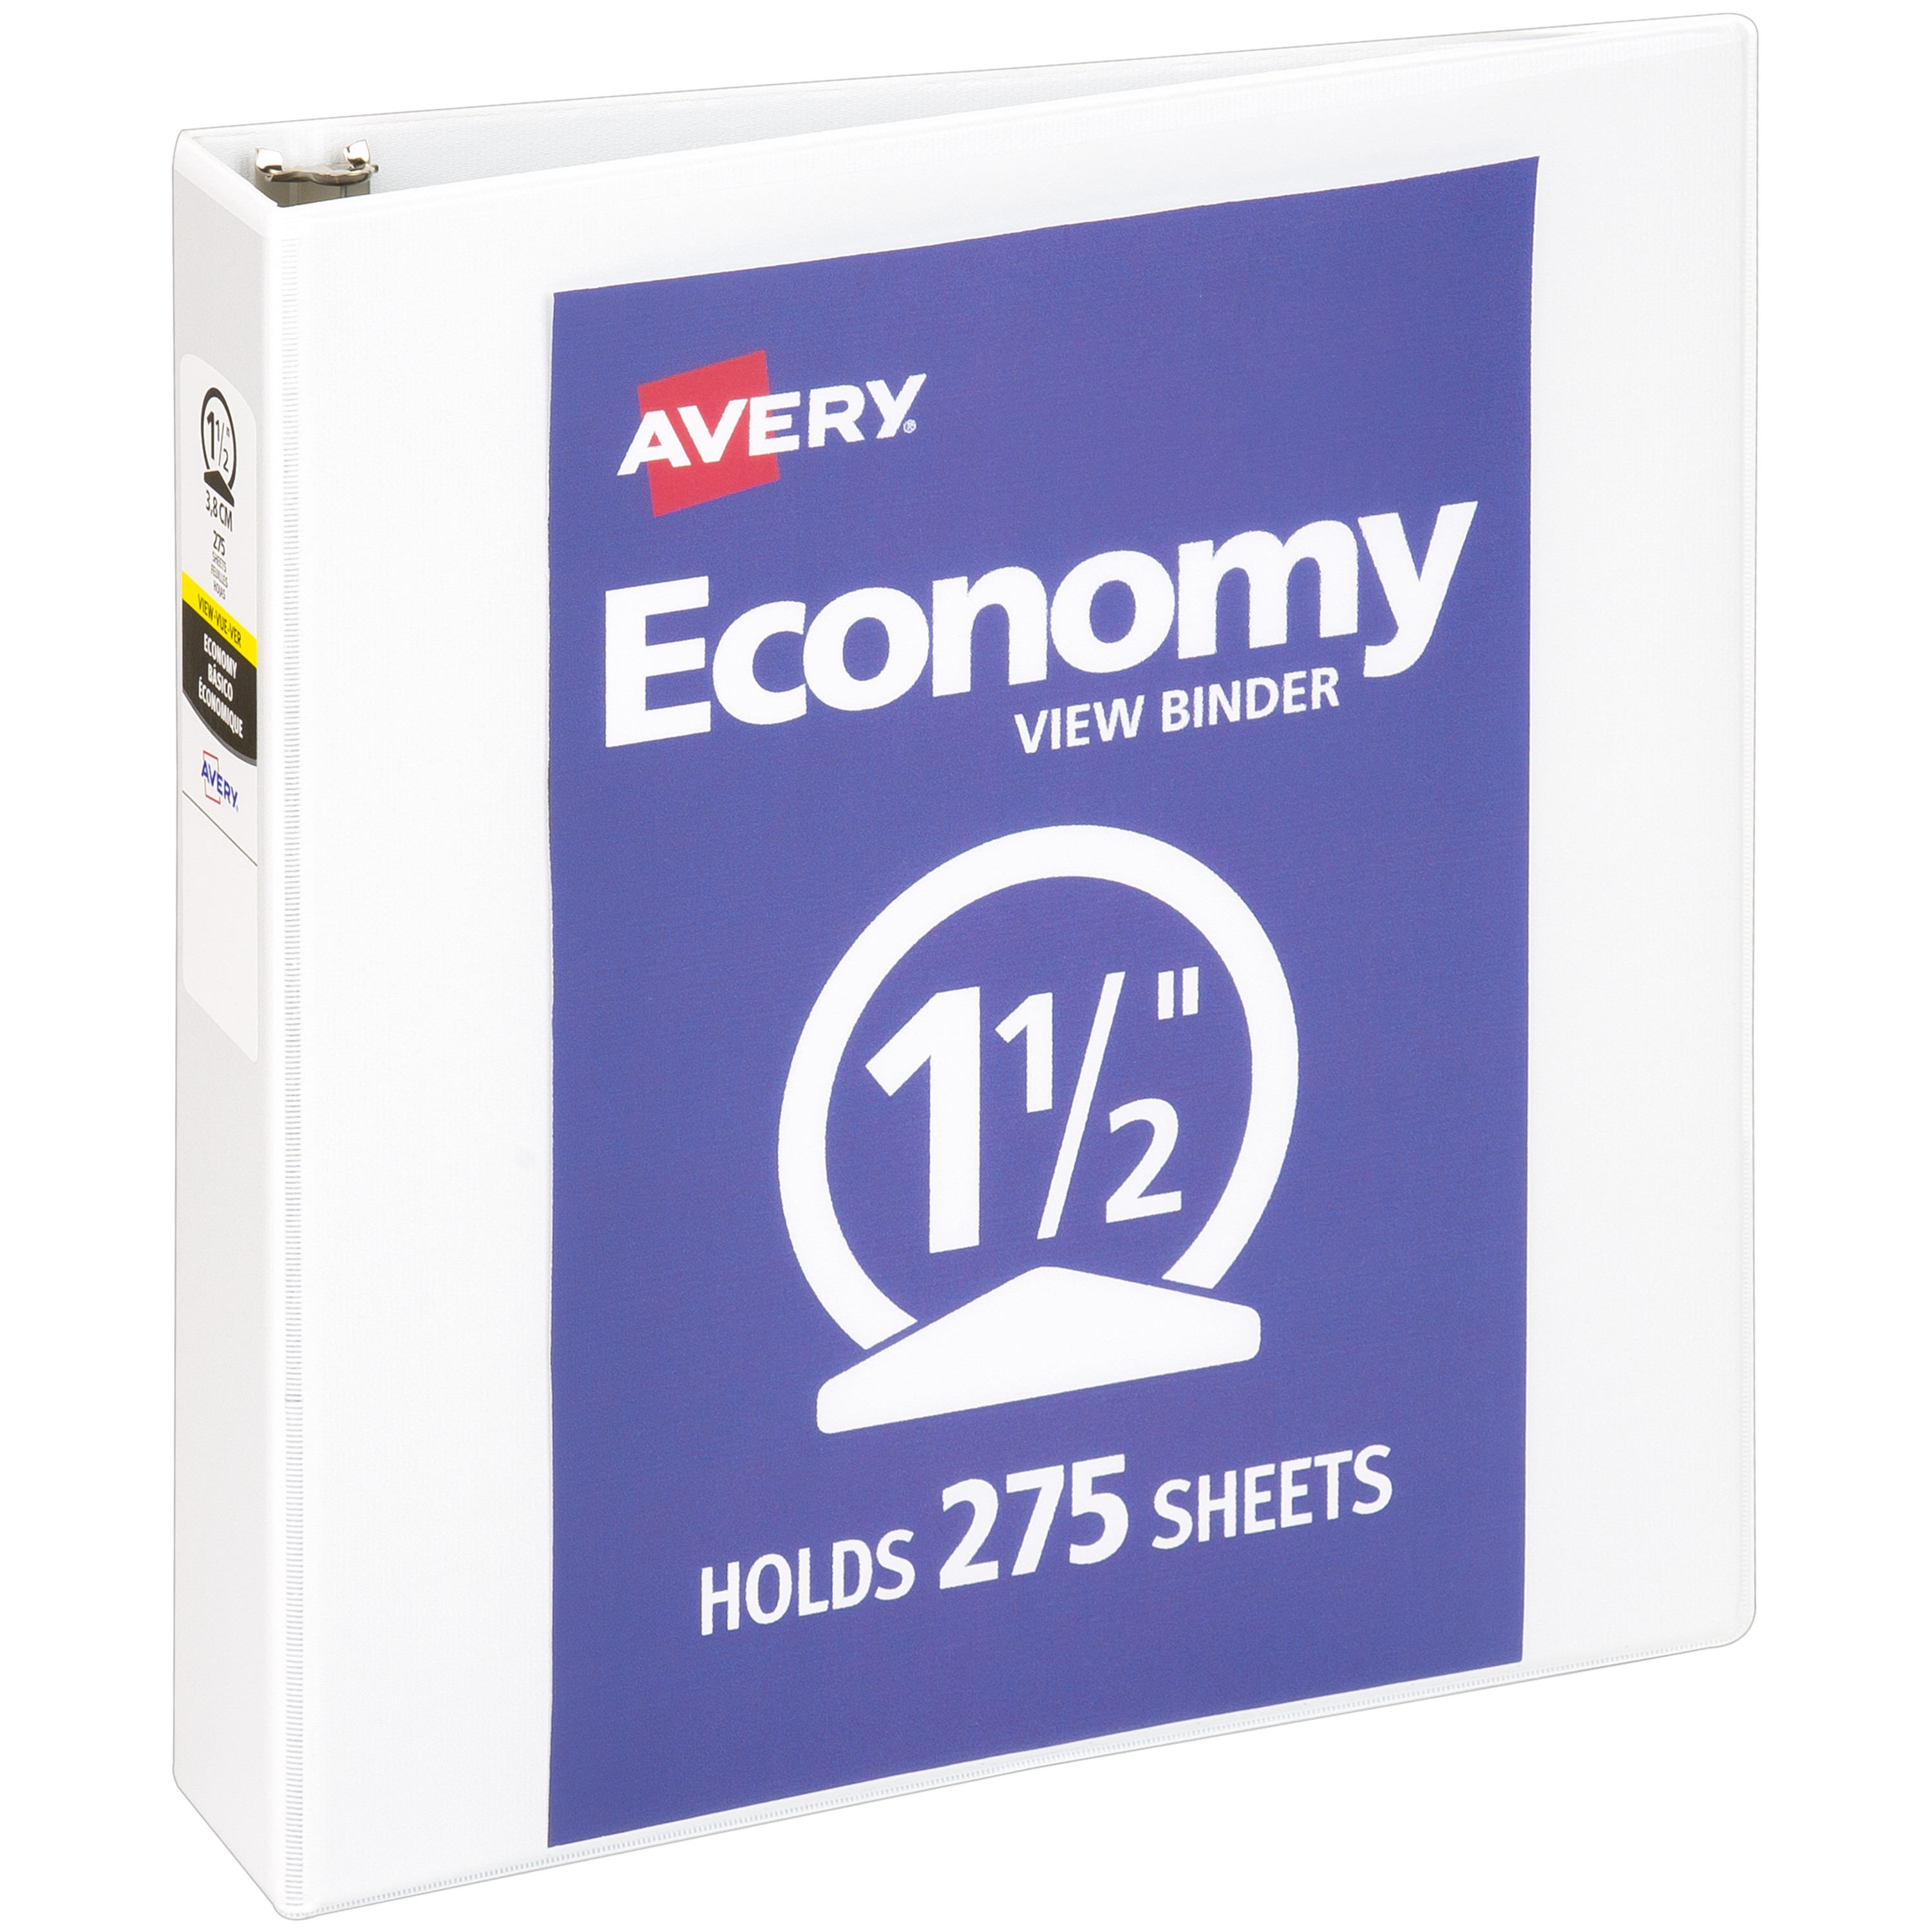 """Avery 1-1 2"""" Economy View Binder, Round Rings, White, 275 SHeets by Avery Products Corporation"""